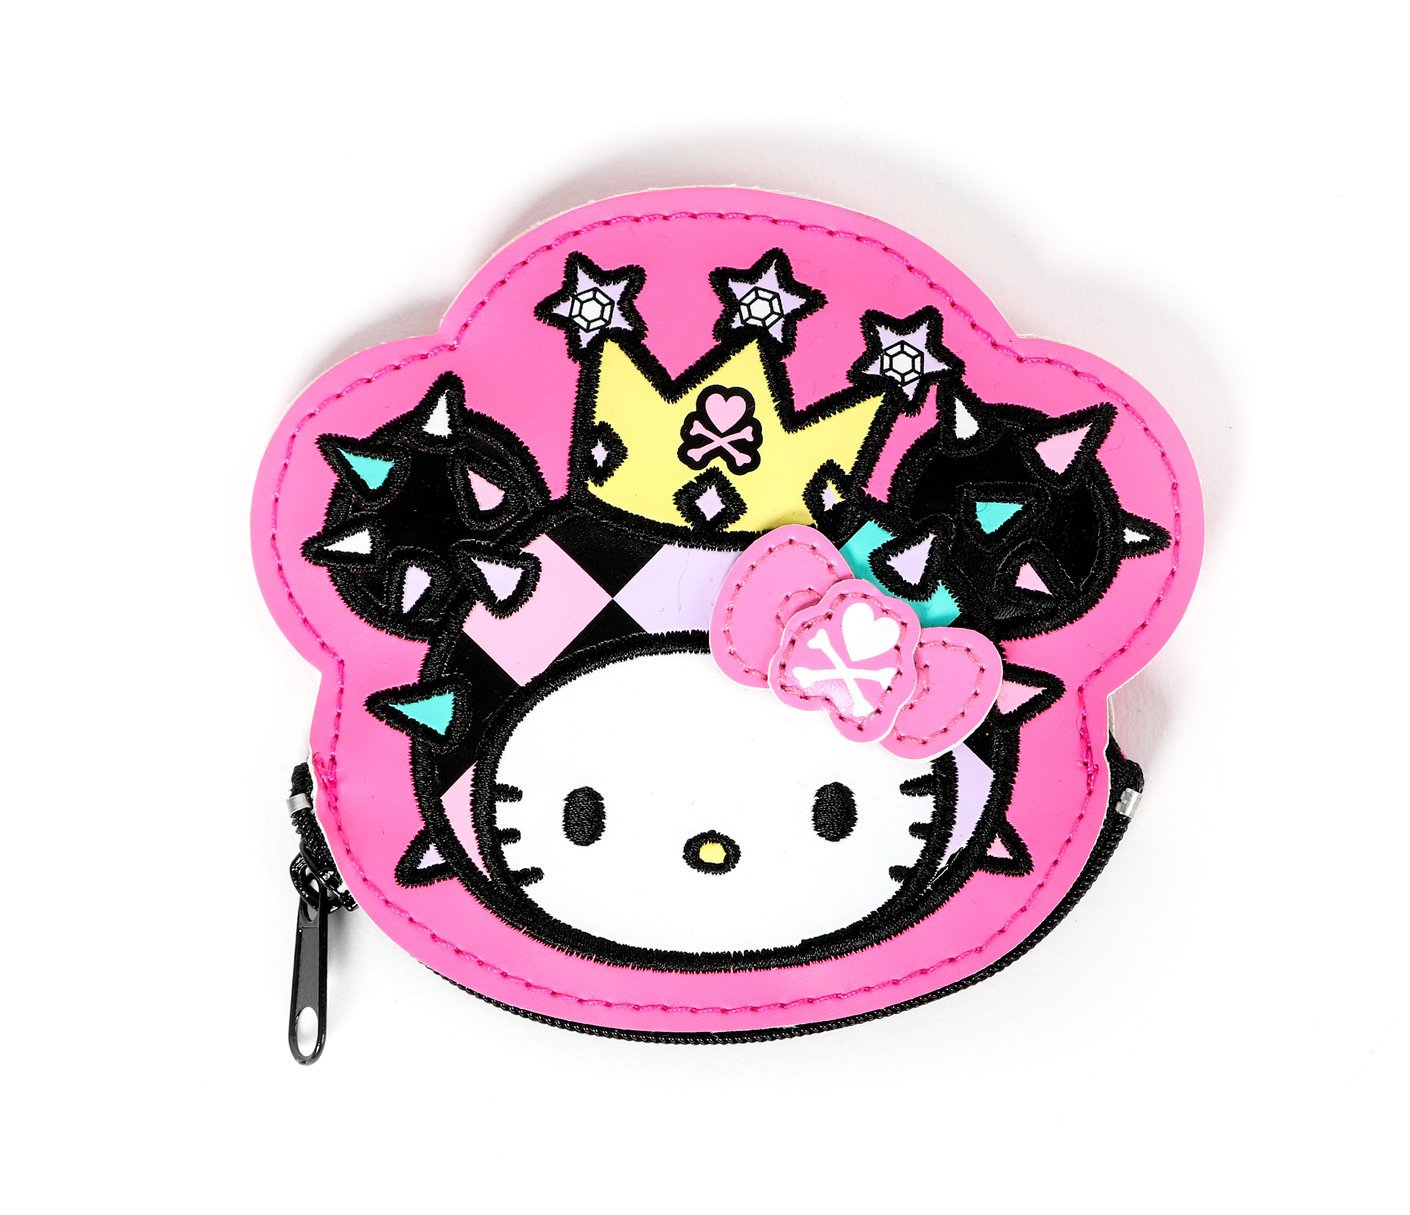 tokidoki x Hello Kitty Die-Cut Coin Purse: Cosmic